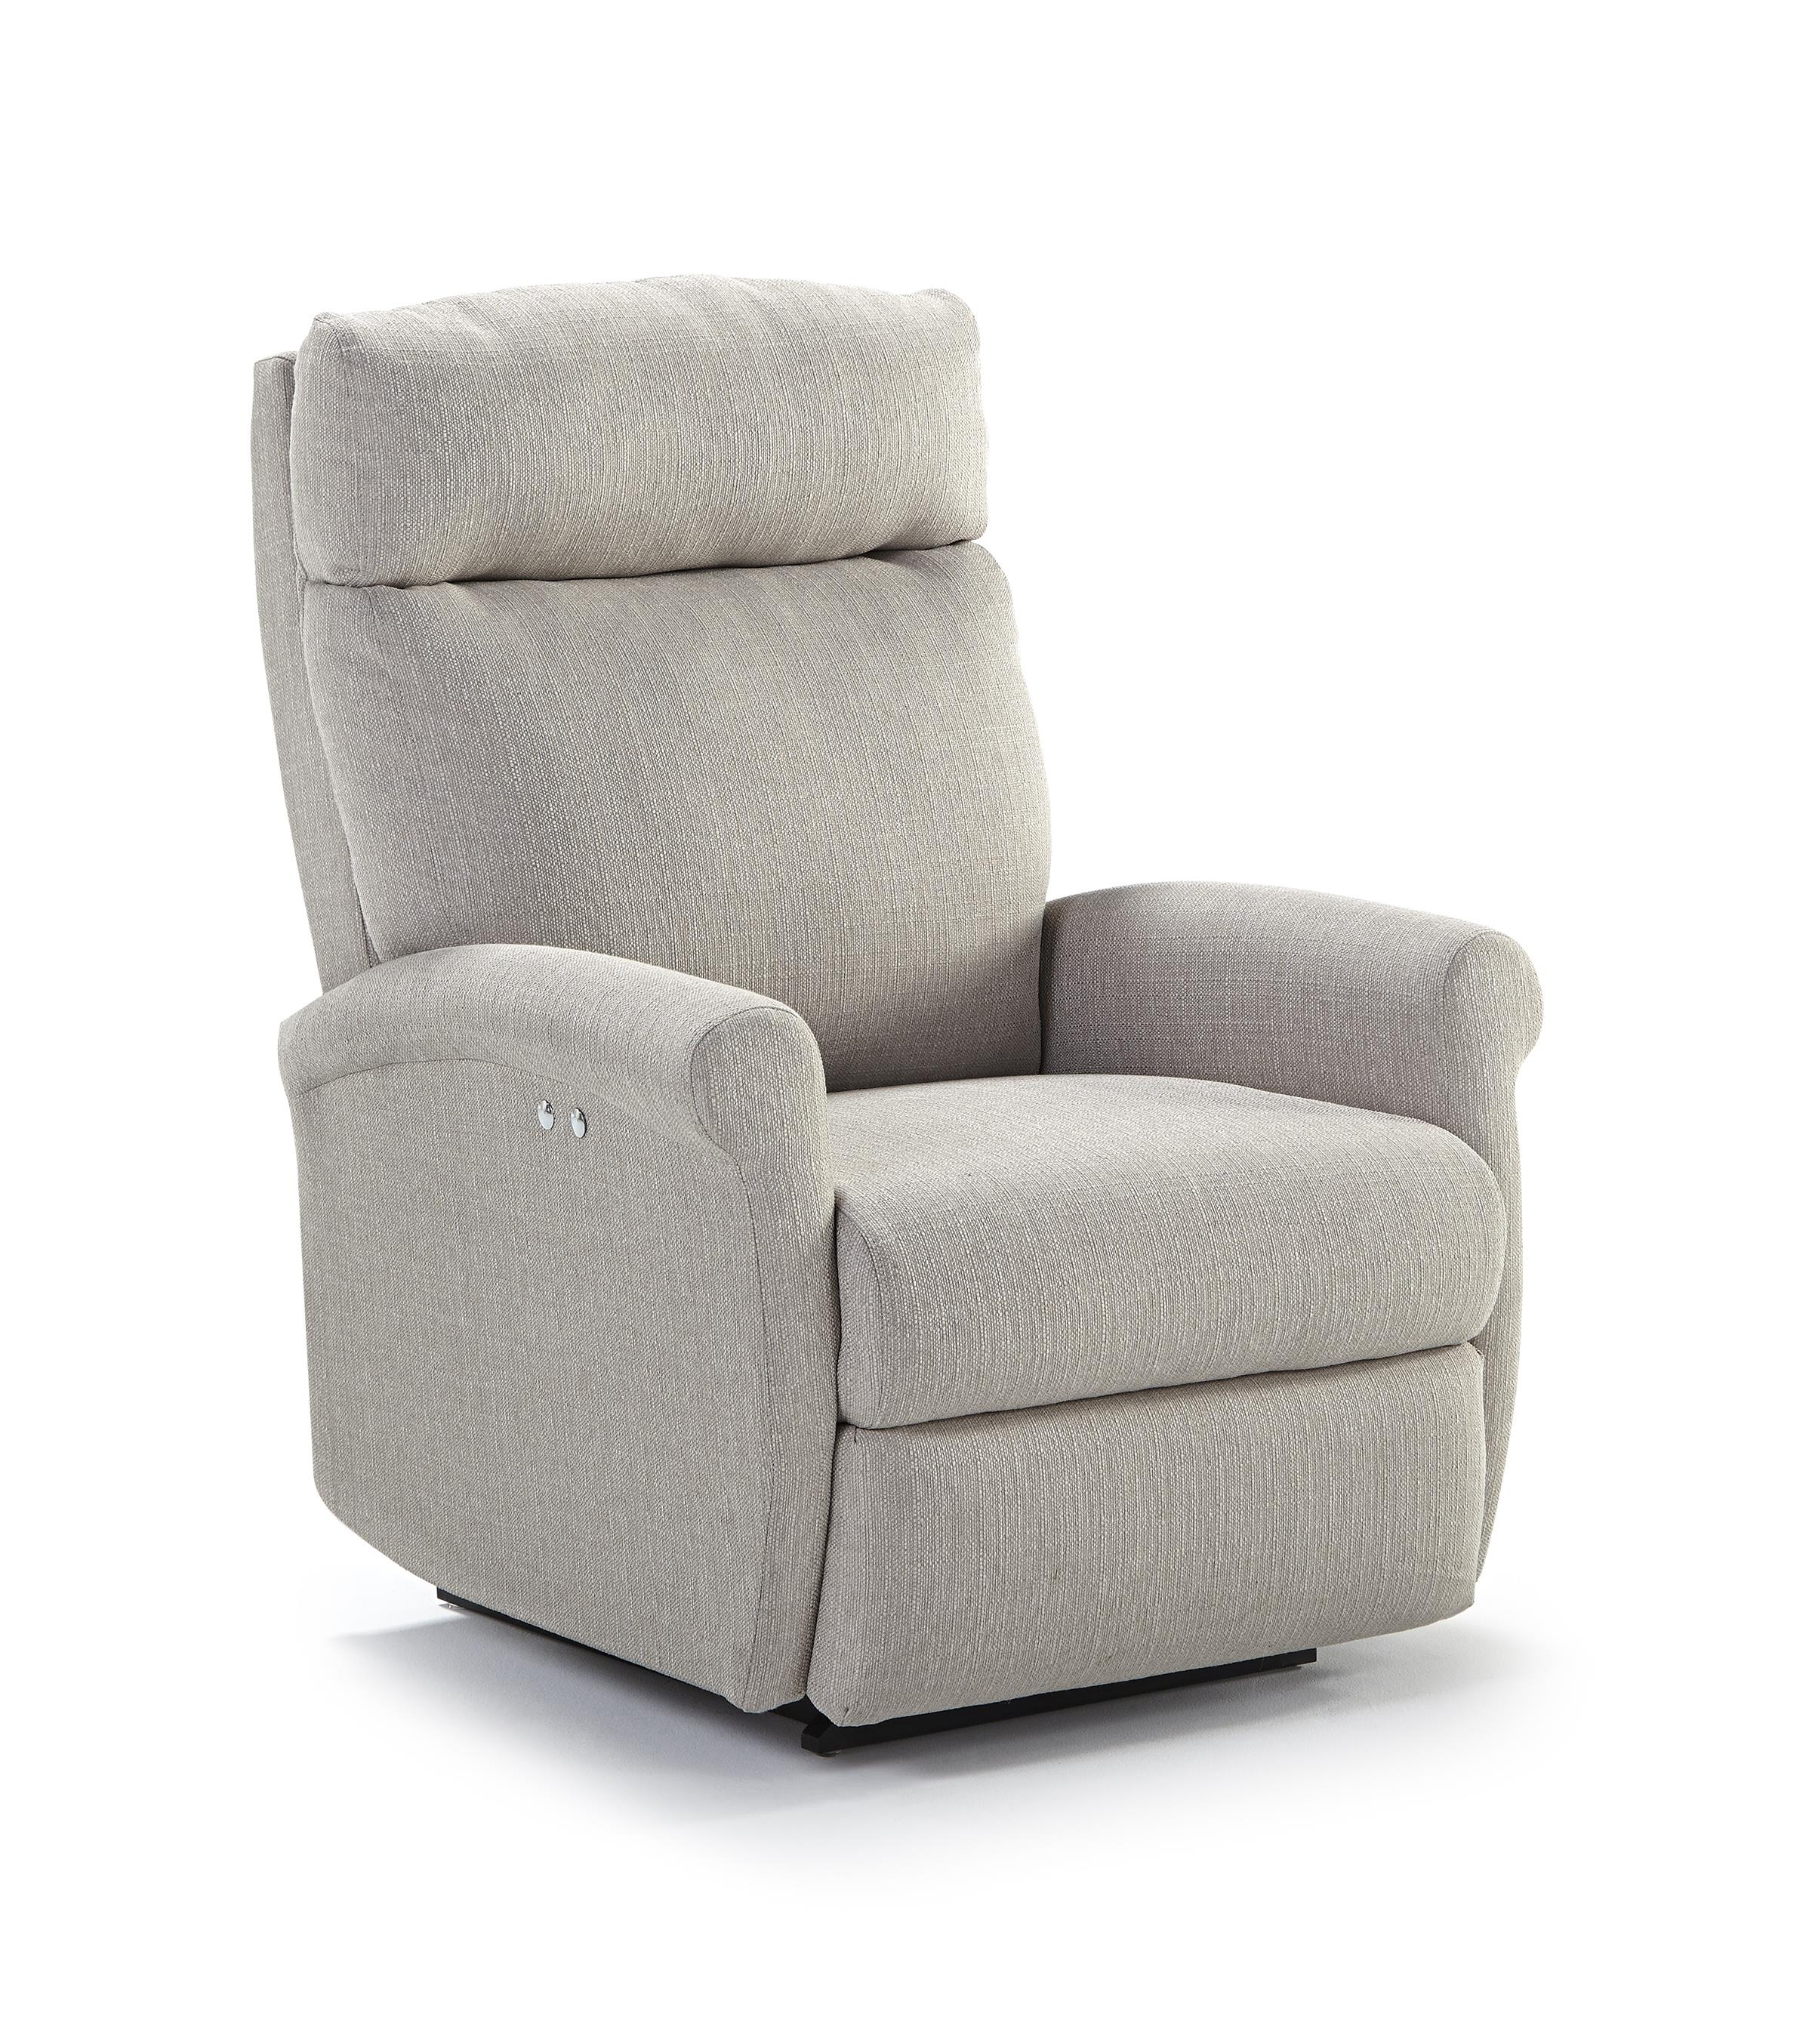 Codie Power Tilt Headrest Space Saver Recliner by Best Home Furnishings at Rooms and Rest